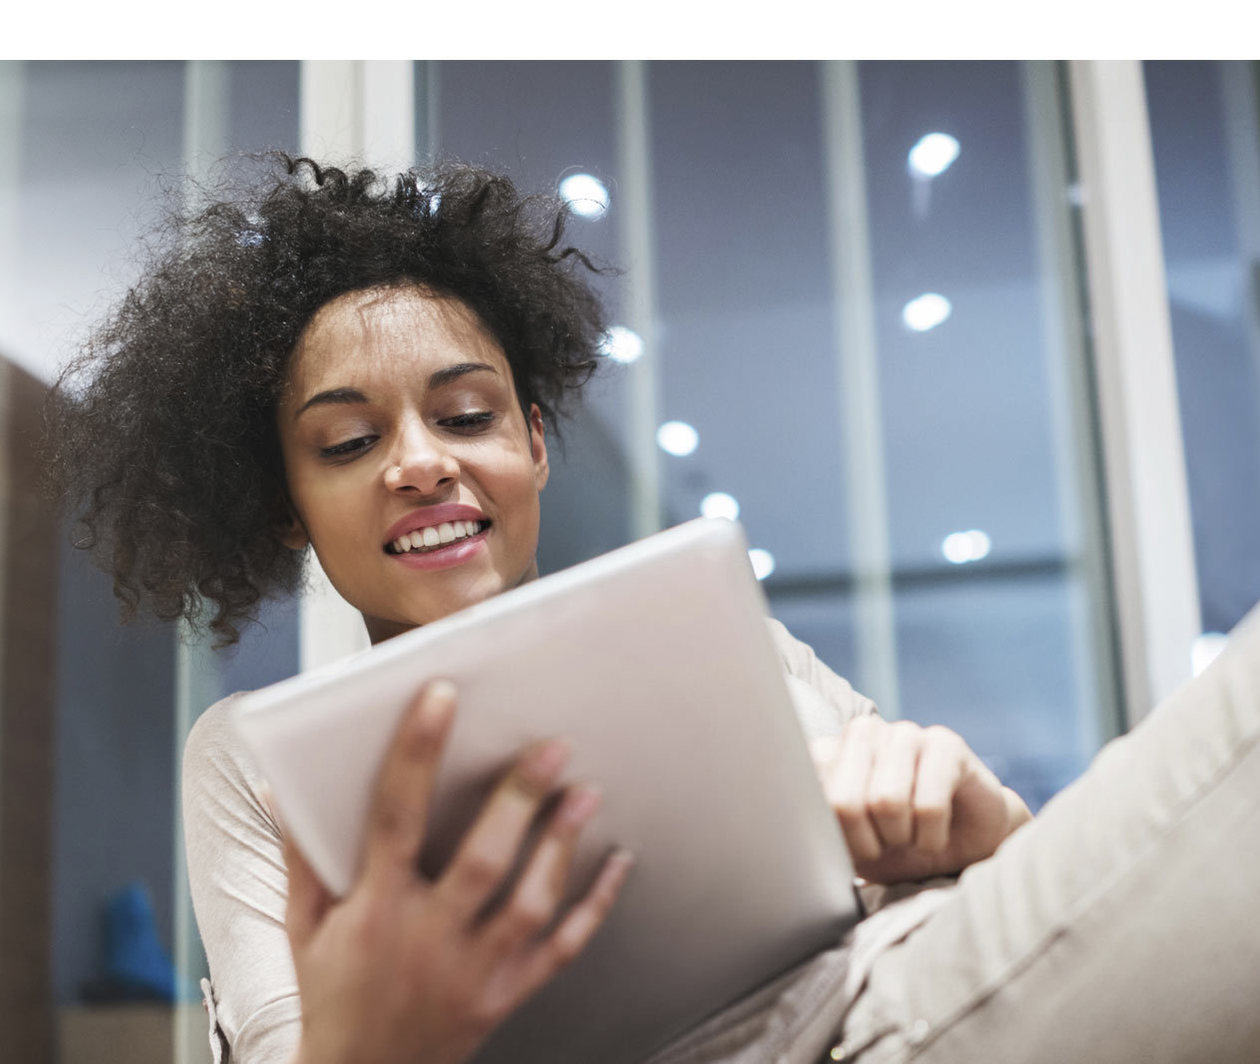 Get Started with Online Learning